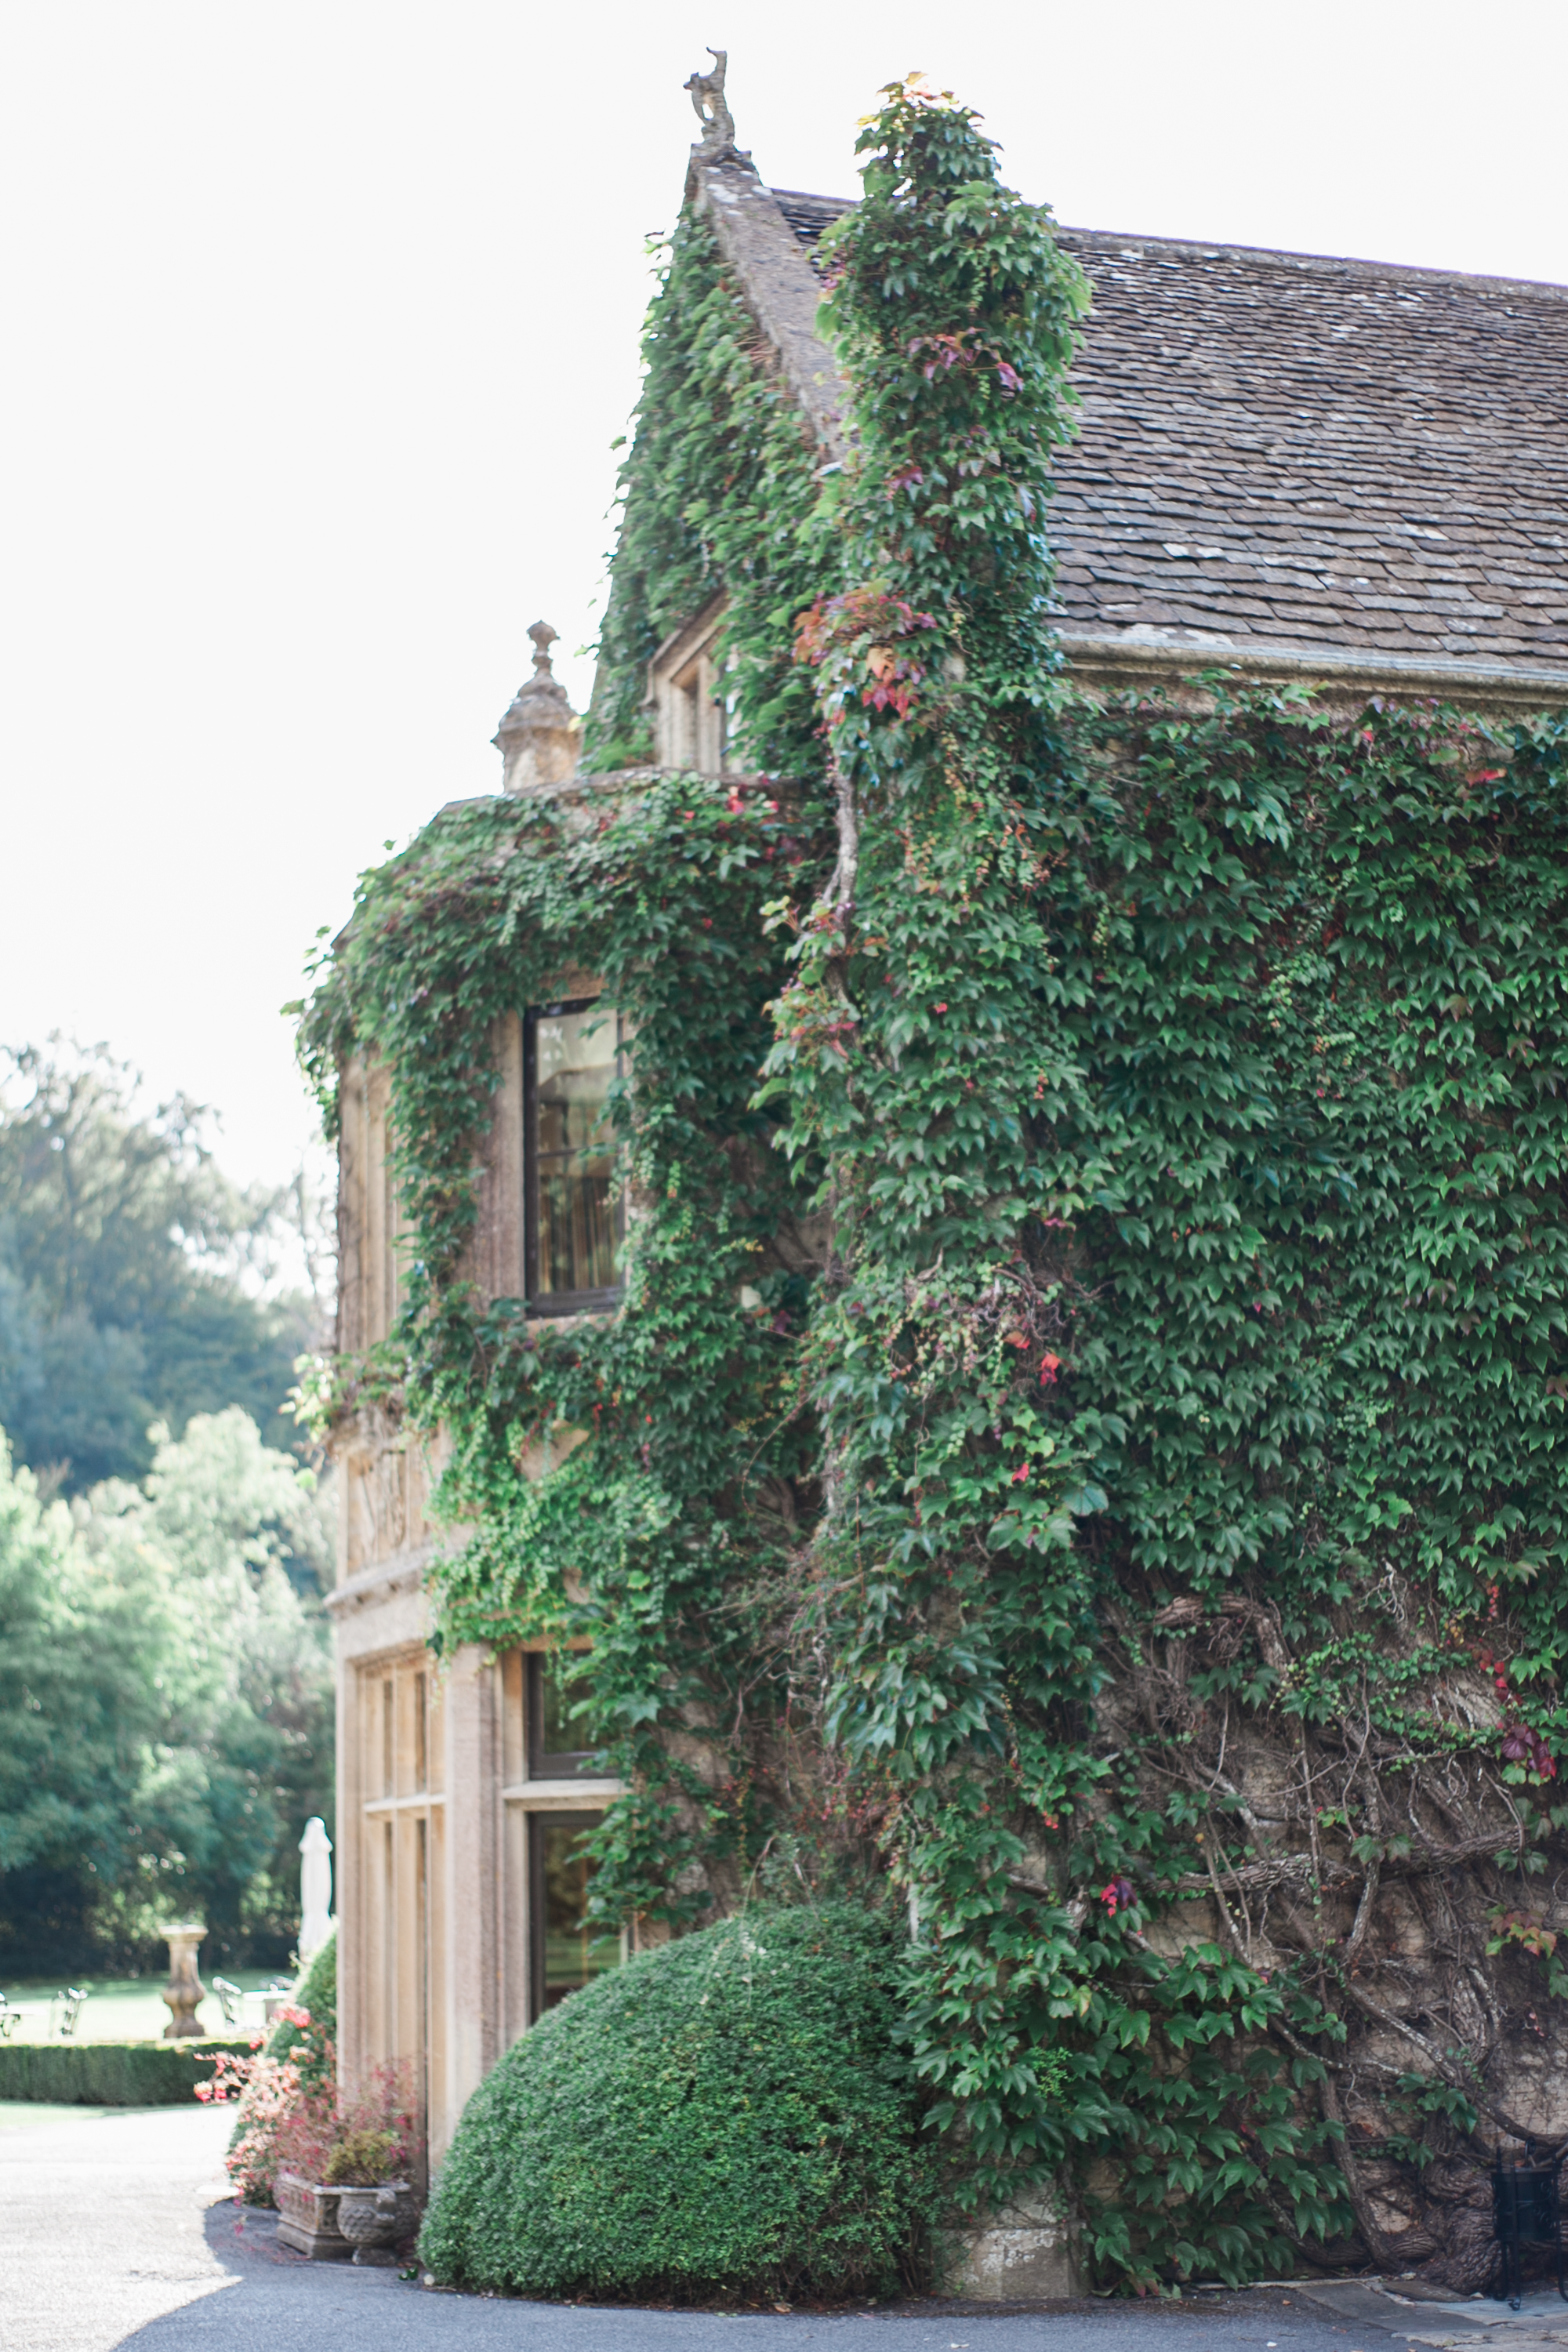 day_three_cotswolds (73 of 133).jpg